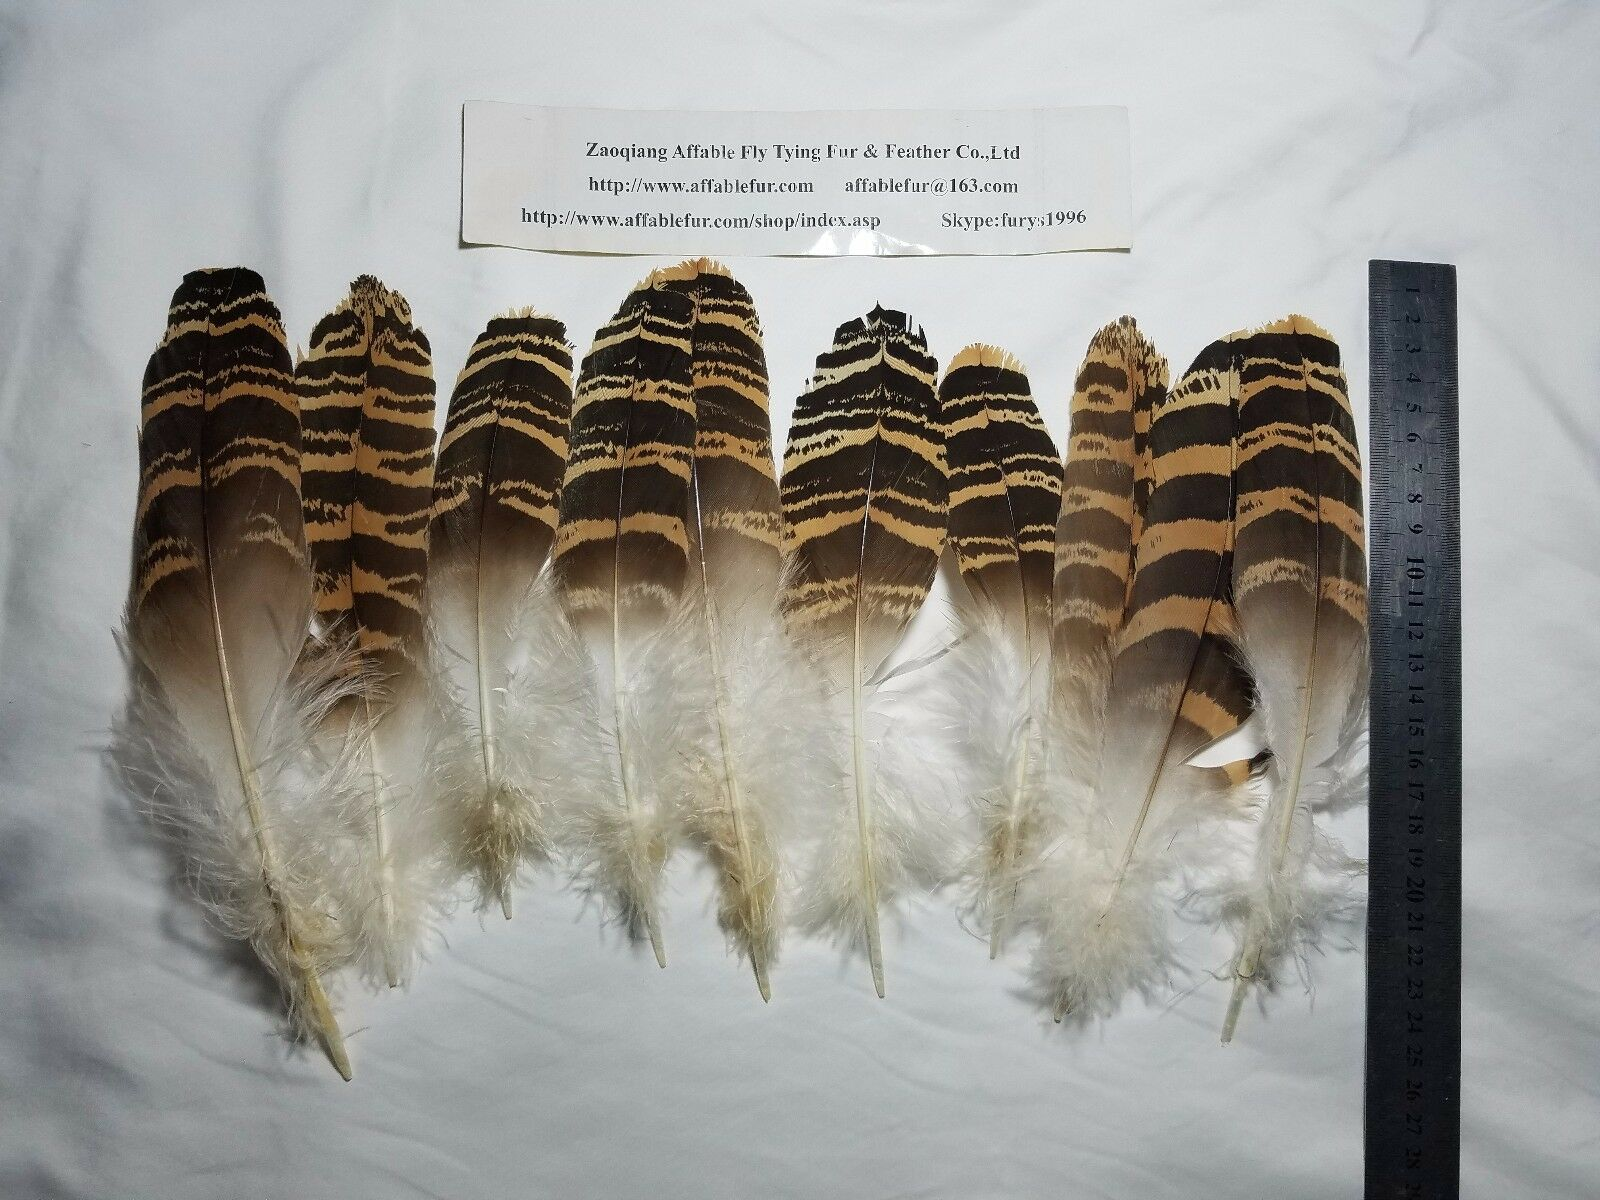 10 Pieces Natural Rare Vintage Bustard Feather  For Fly Tying  free delivery and returns